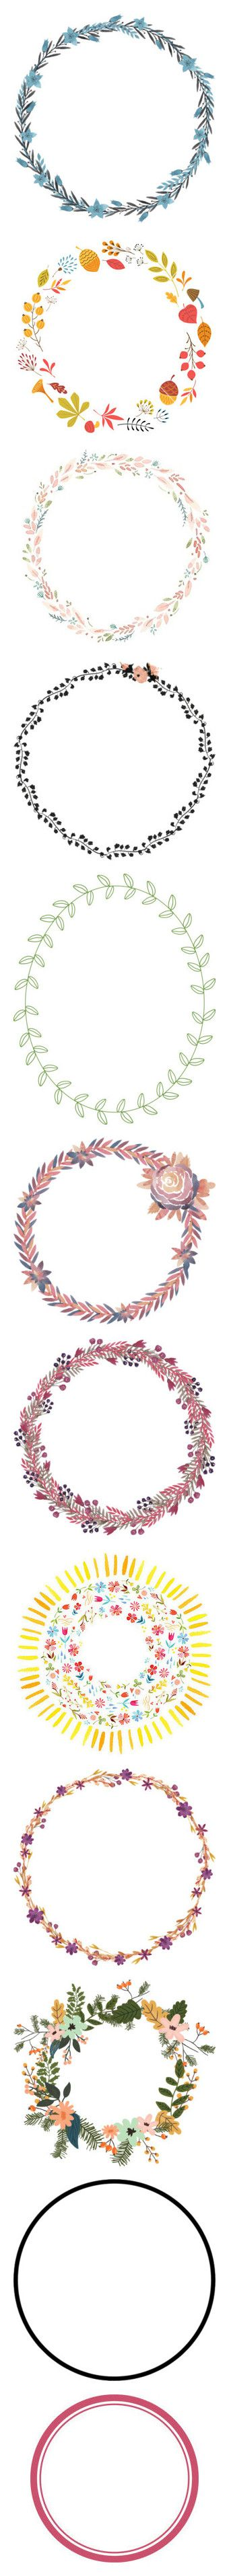 """Wreaths & Circular Frames"" by encelade ❤ liked on Polyvore featuring frames, effect, flowers, borders, picture frame, backgrounds, fillers, circle, circular and round"